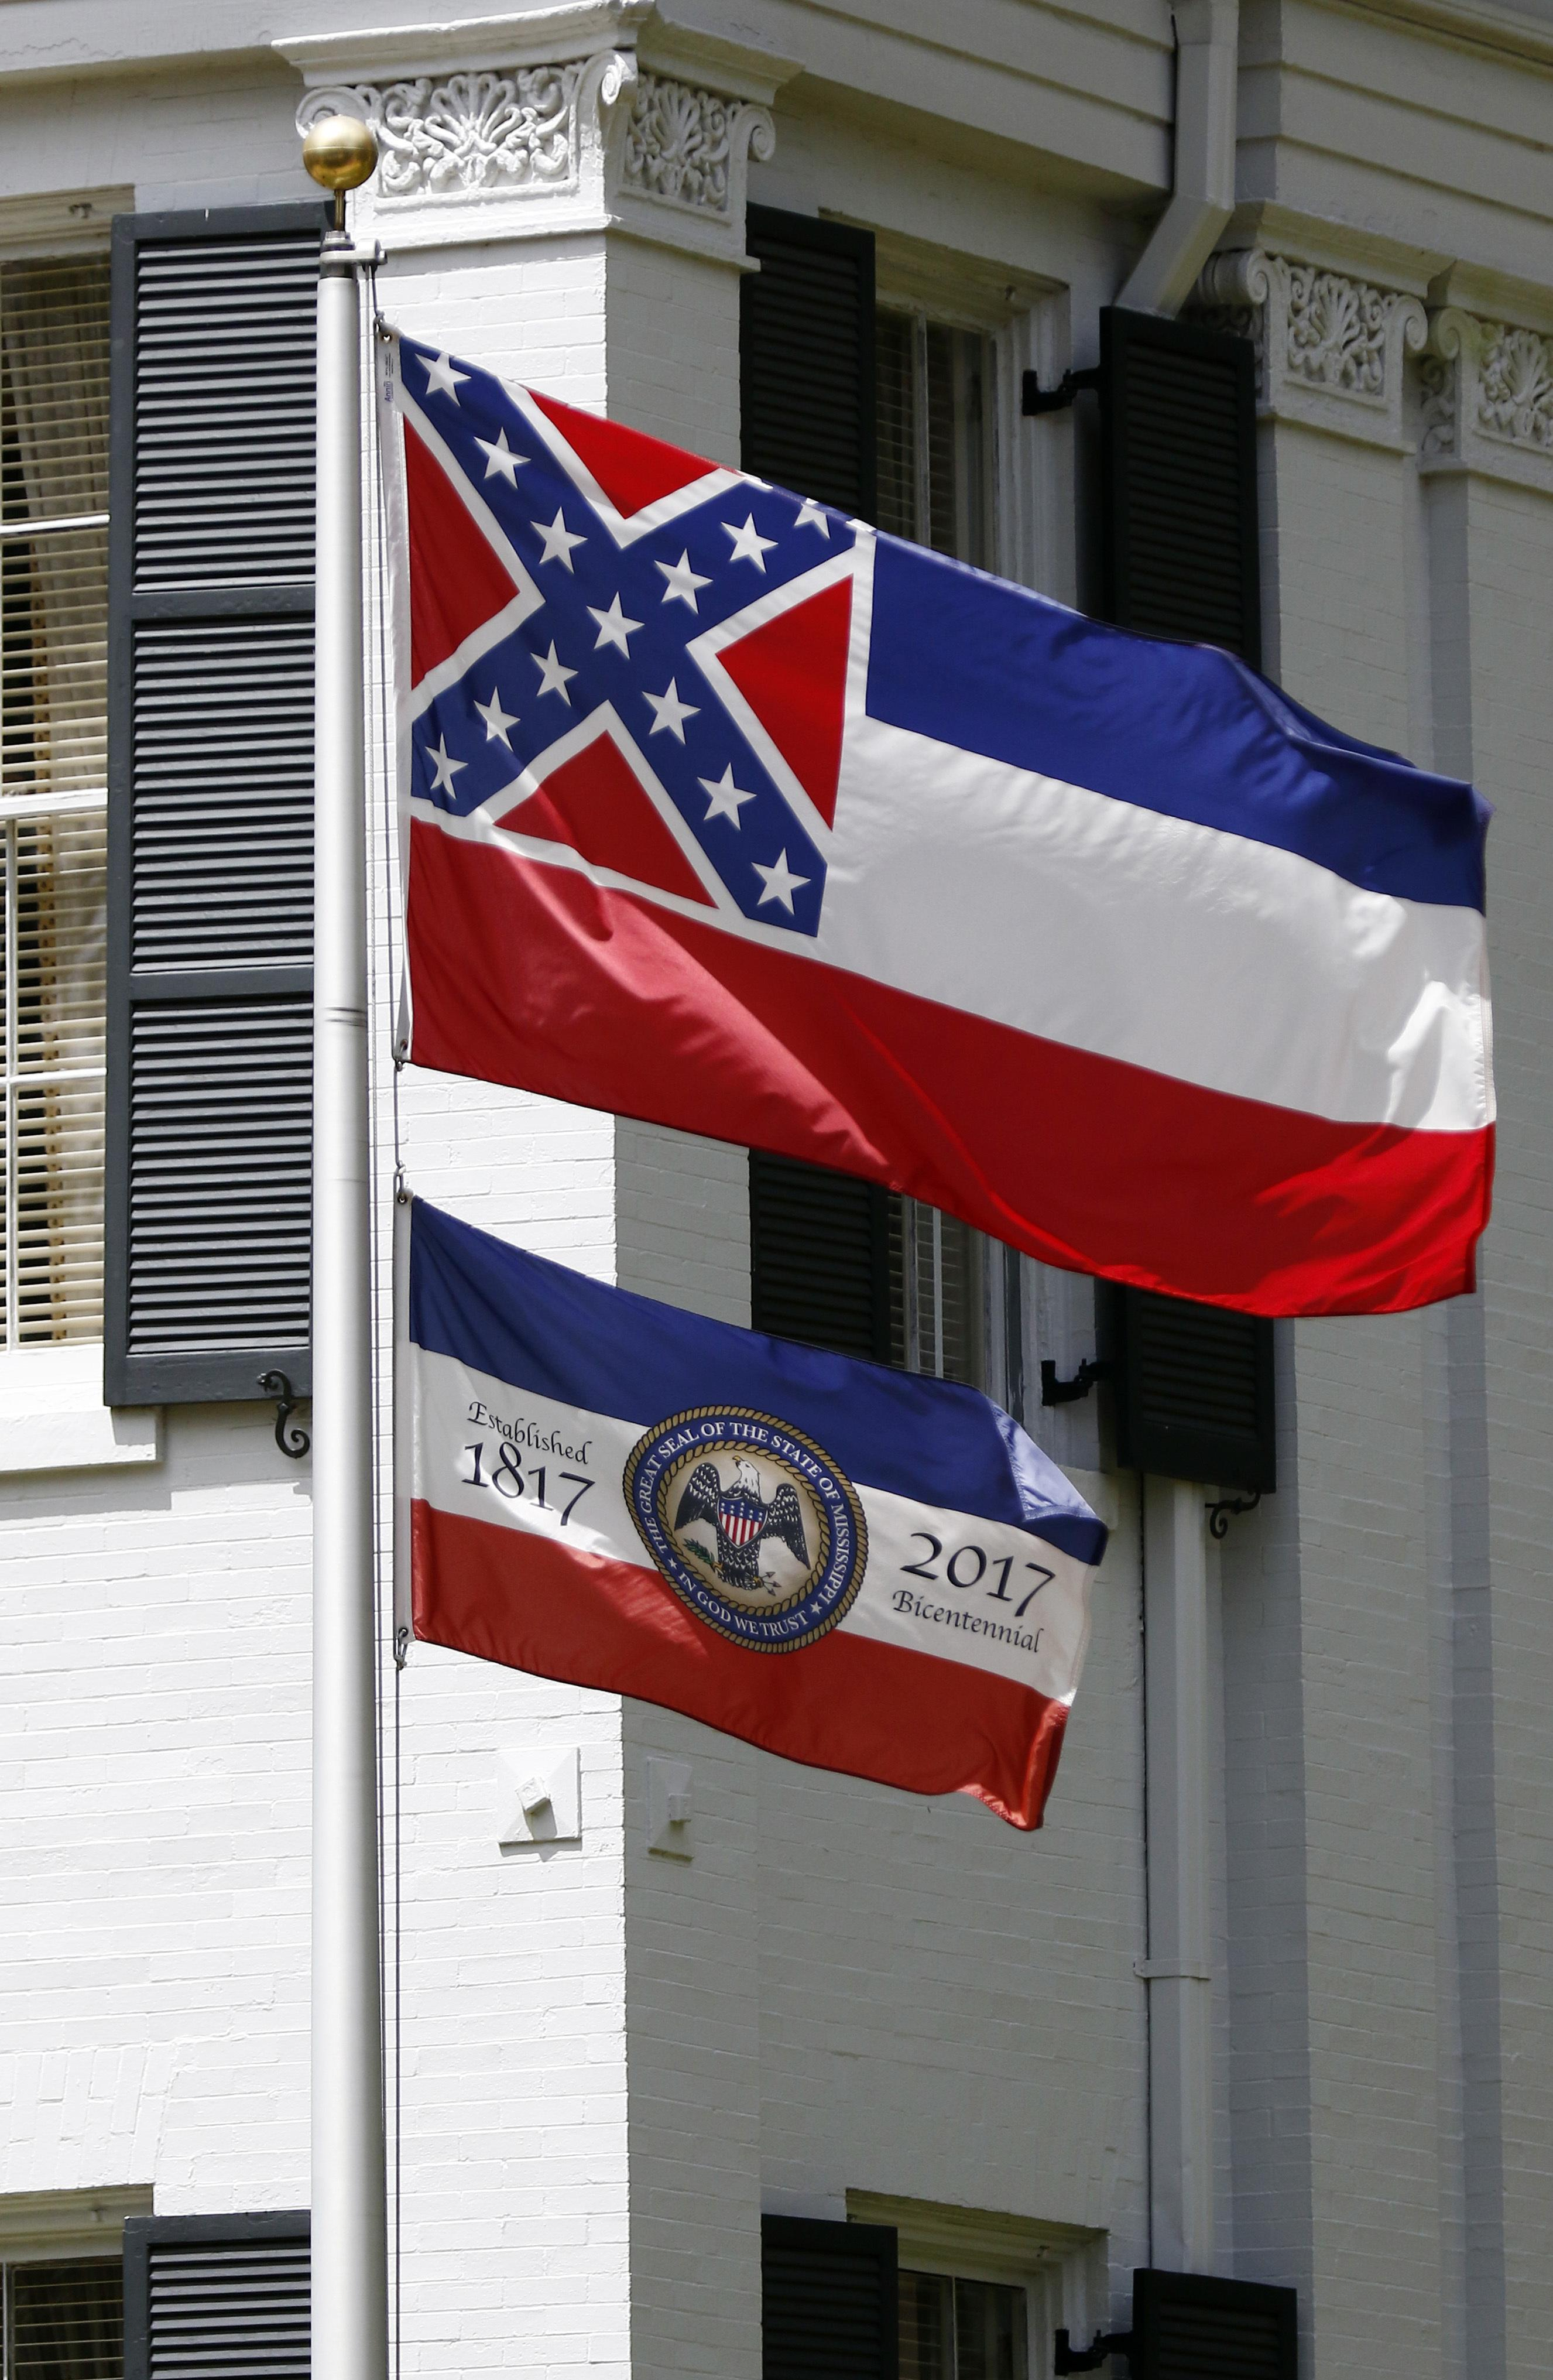 confederatethemed flag rises again in 1 mississippi city